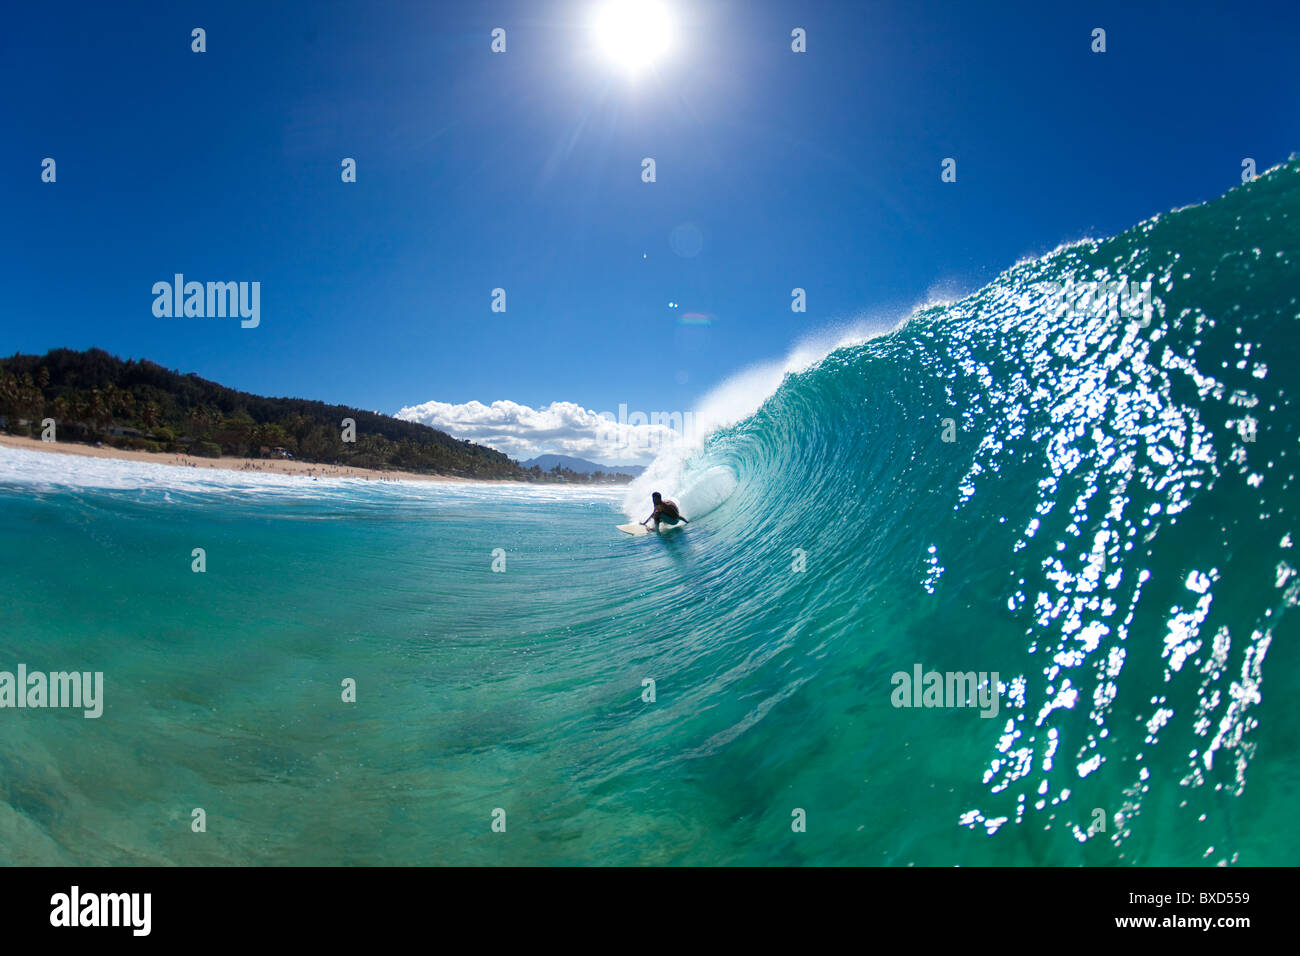 A water view of a surfer getting barreled at Pupukea Sandbar. - Stock Image